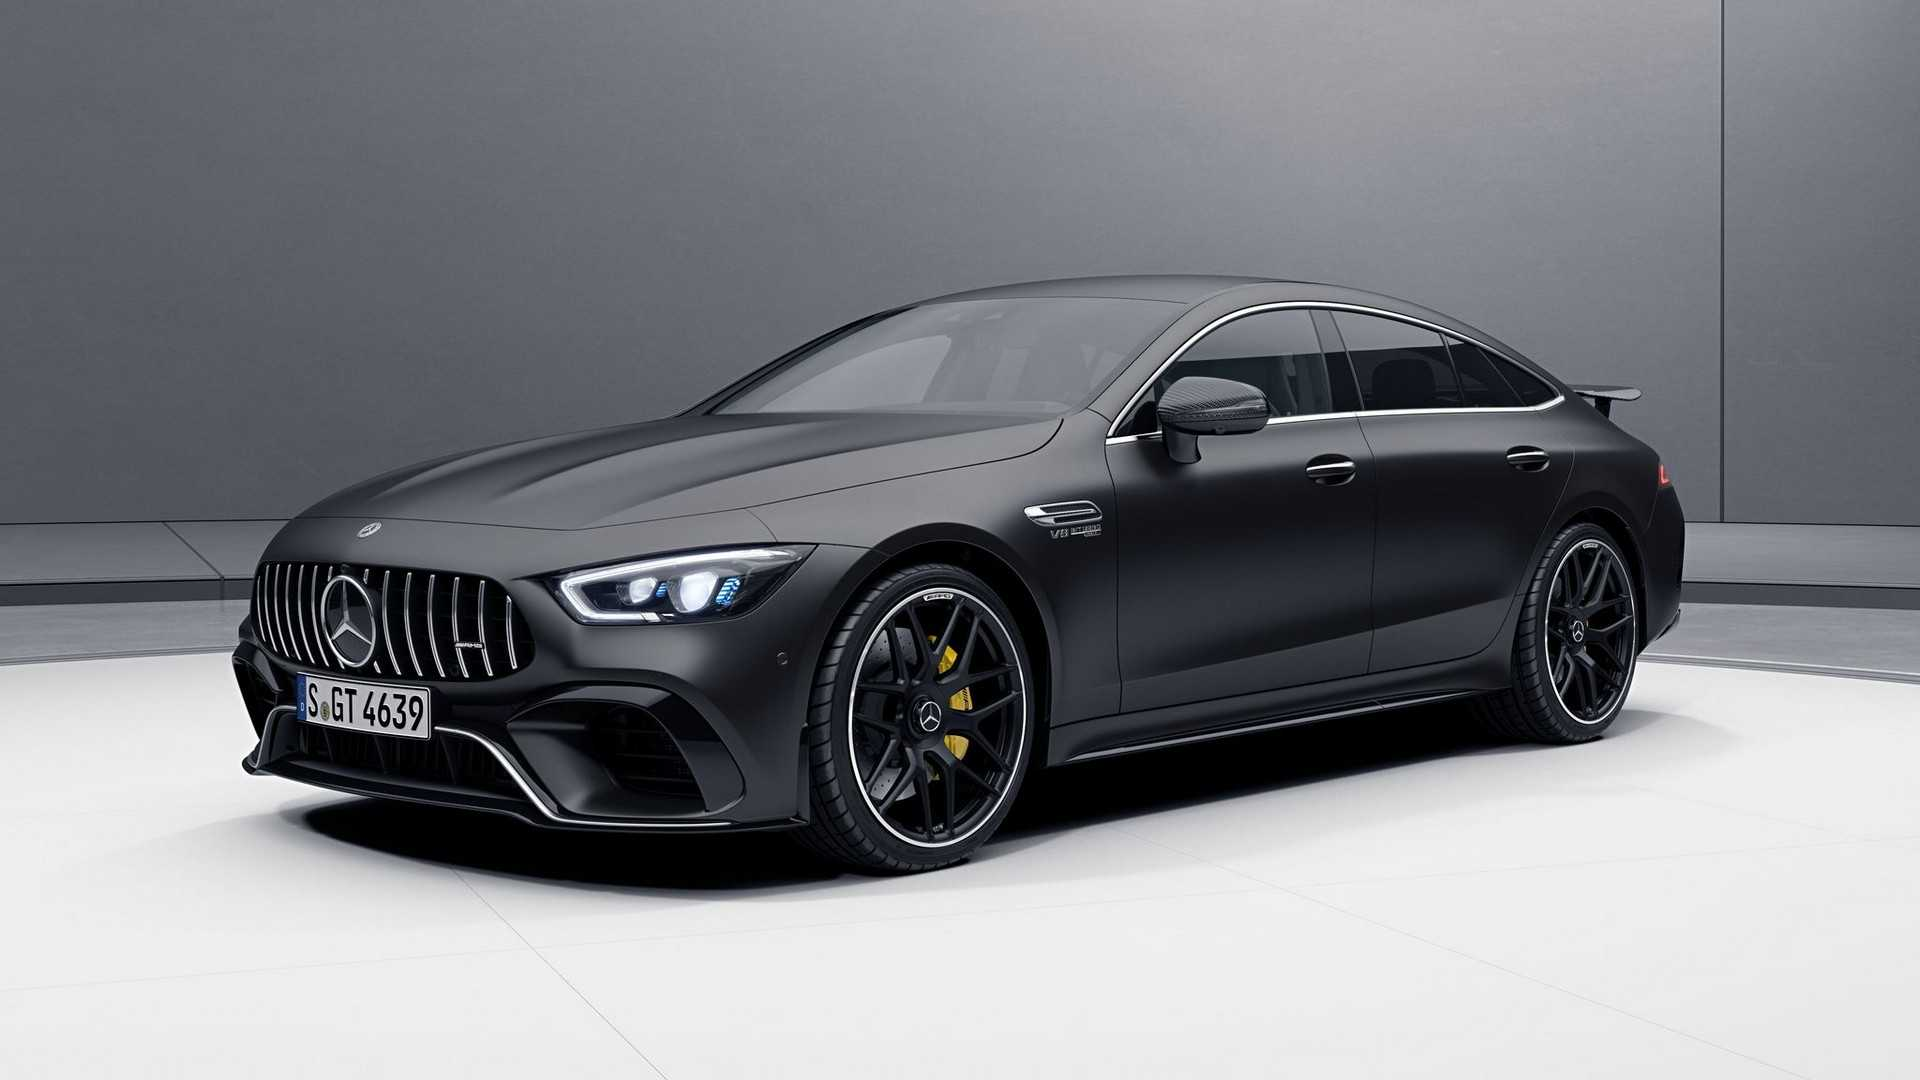 Mercedes Amg Mercedes Amg Gt 4 Door Coupe Now Available With Amg Aerodynamic